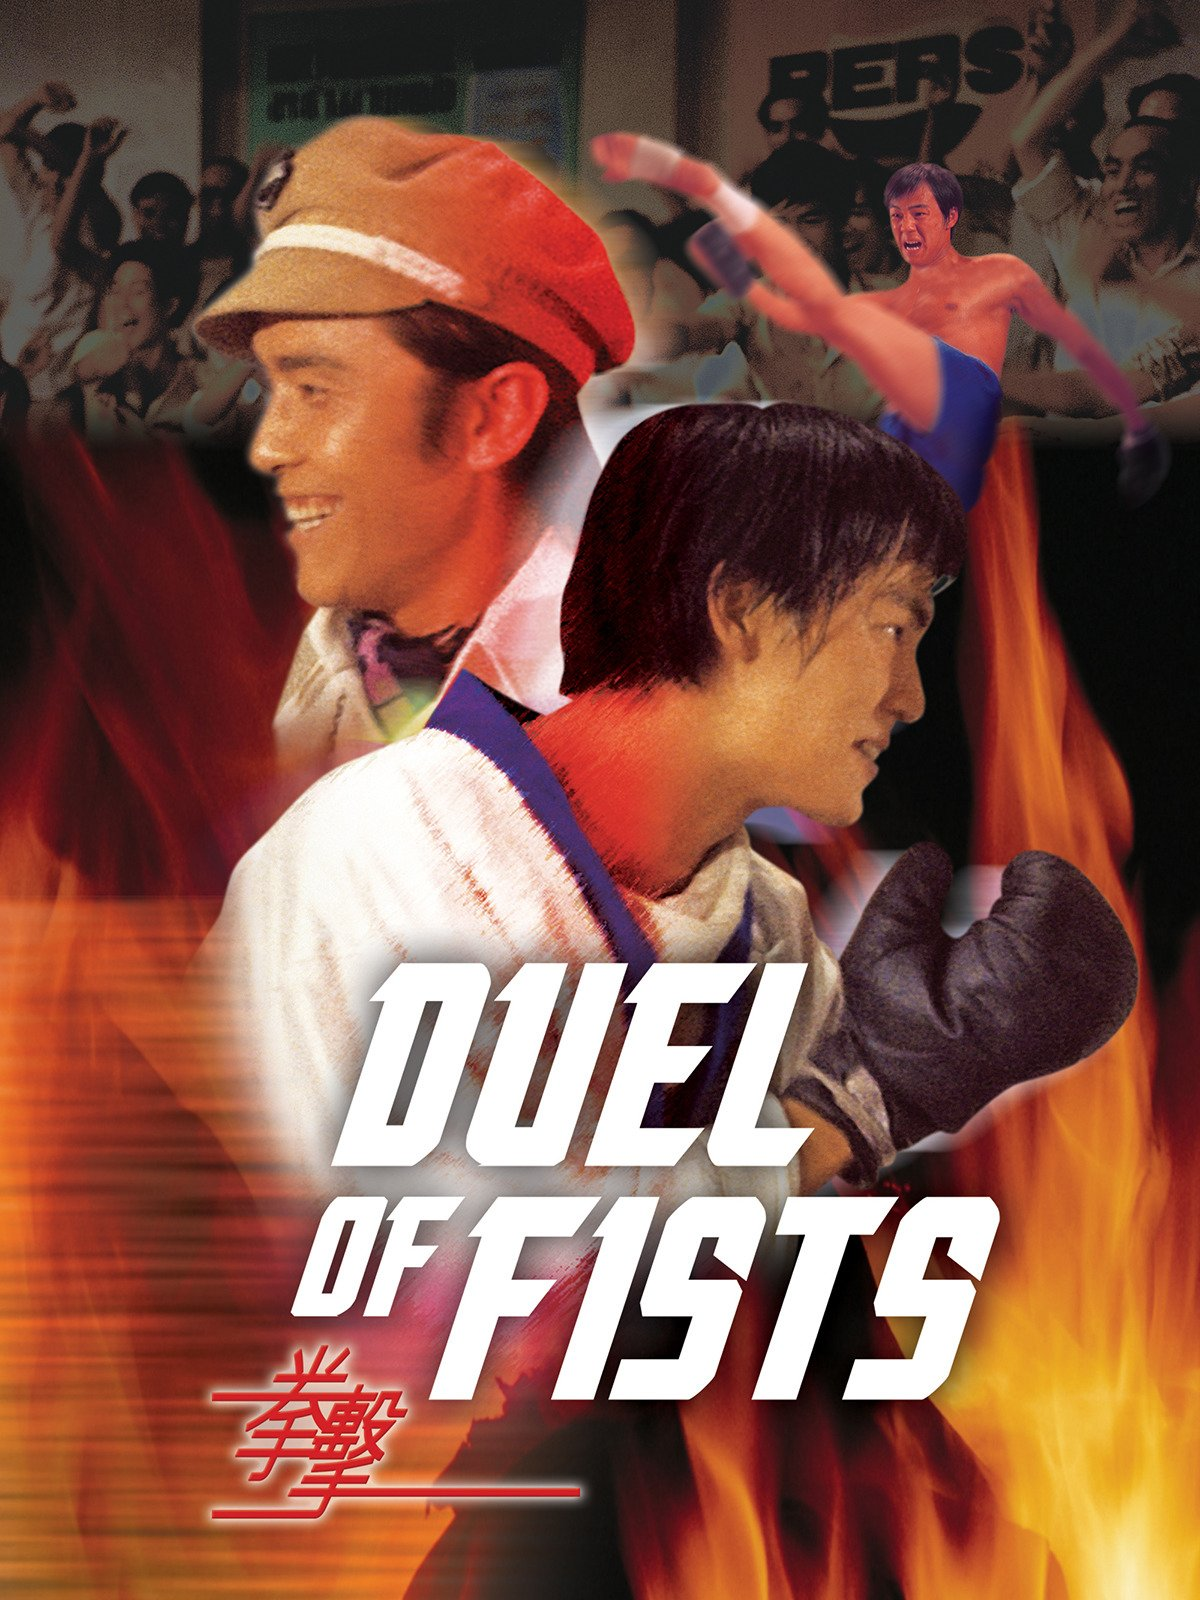 You duel of the iron fist stream remarkable